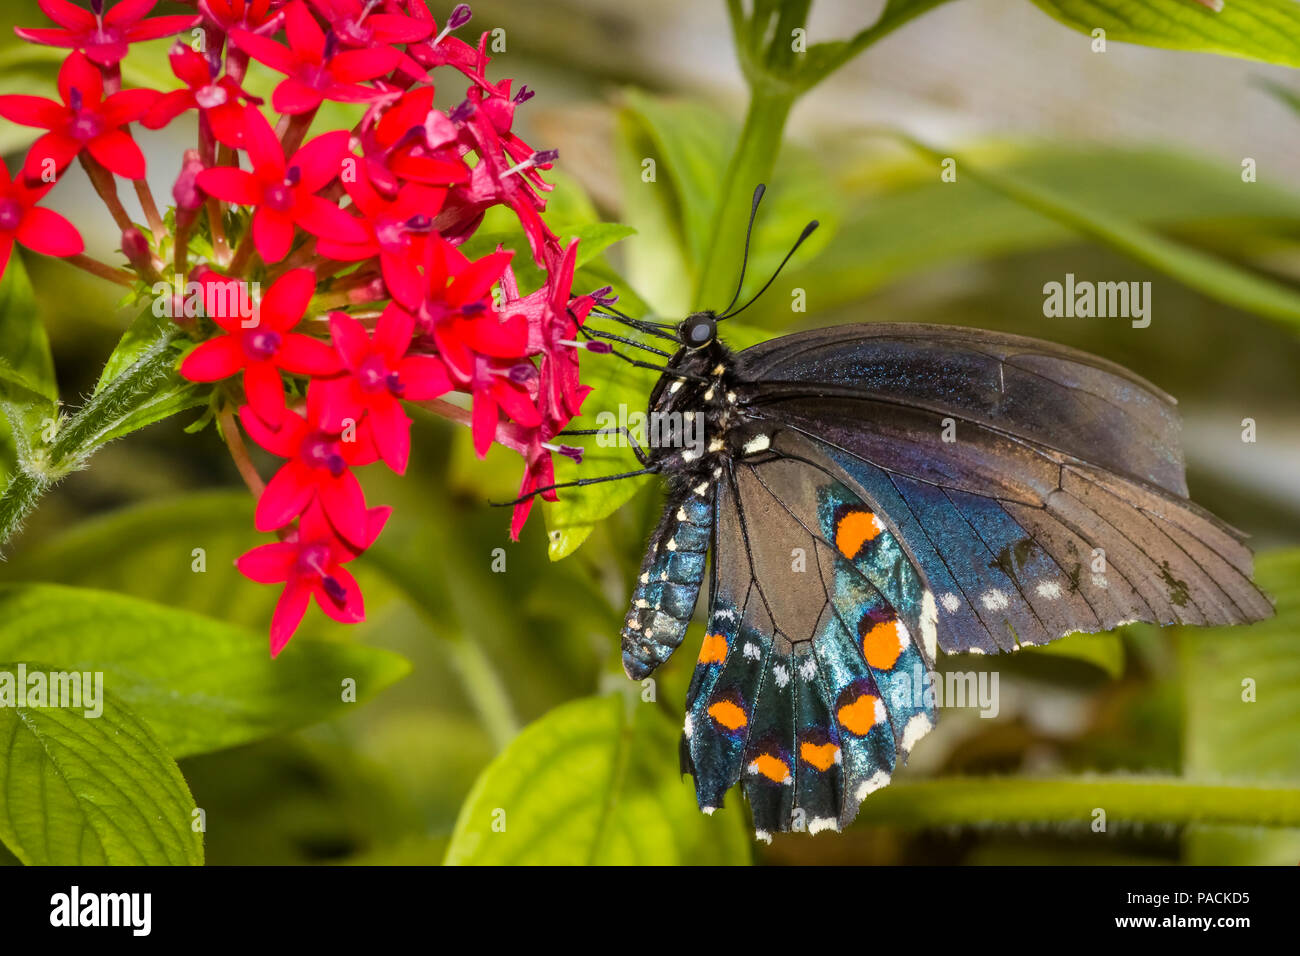 Closeup of Black Swallowtail butterfly also called the eastern black swallowtail or American swallowtail on a red flower - Stock Image